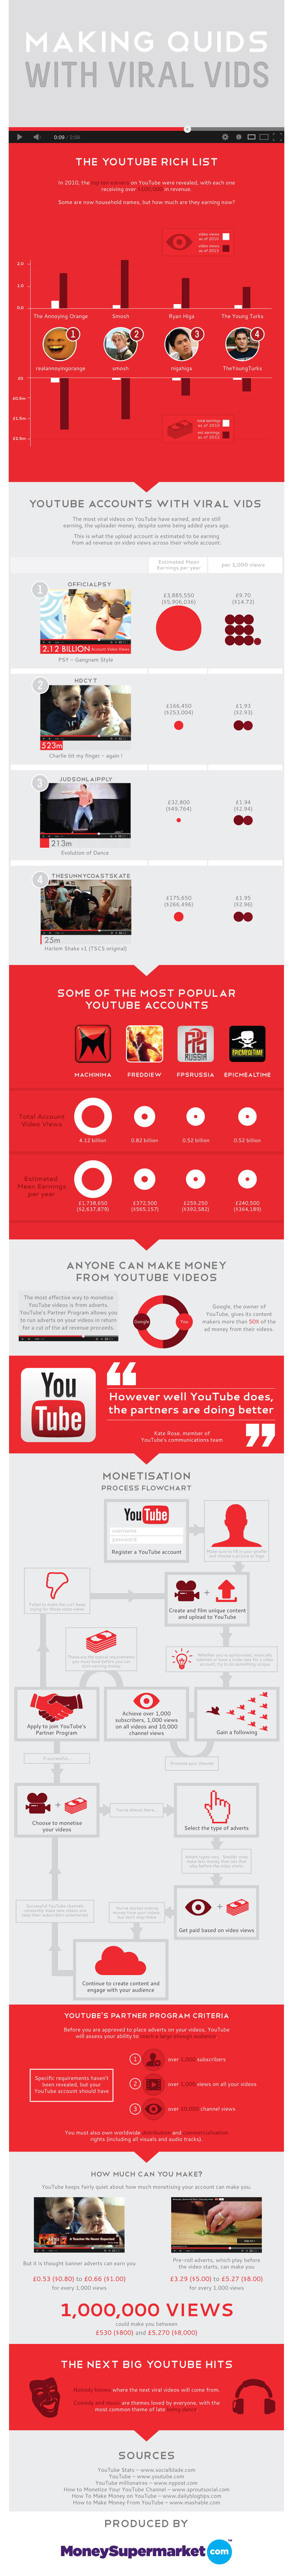 make money with viral videos infographic